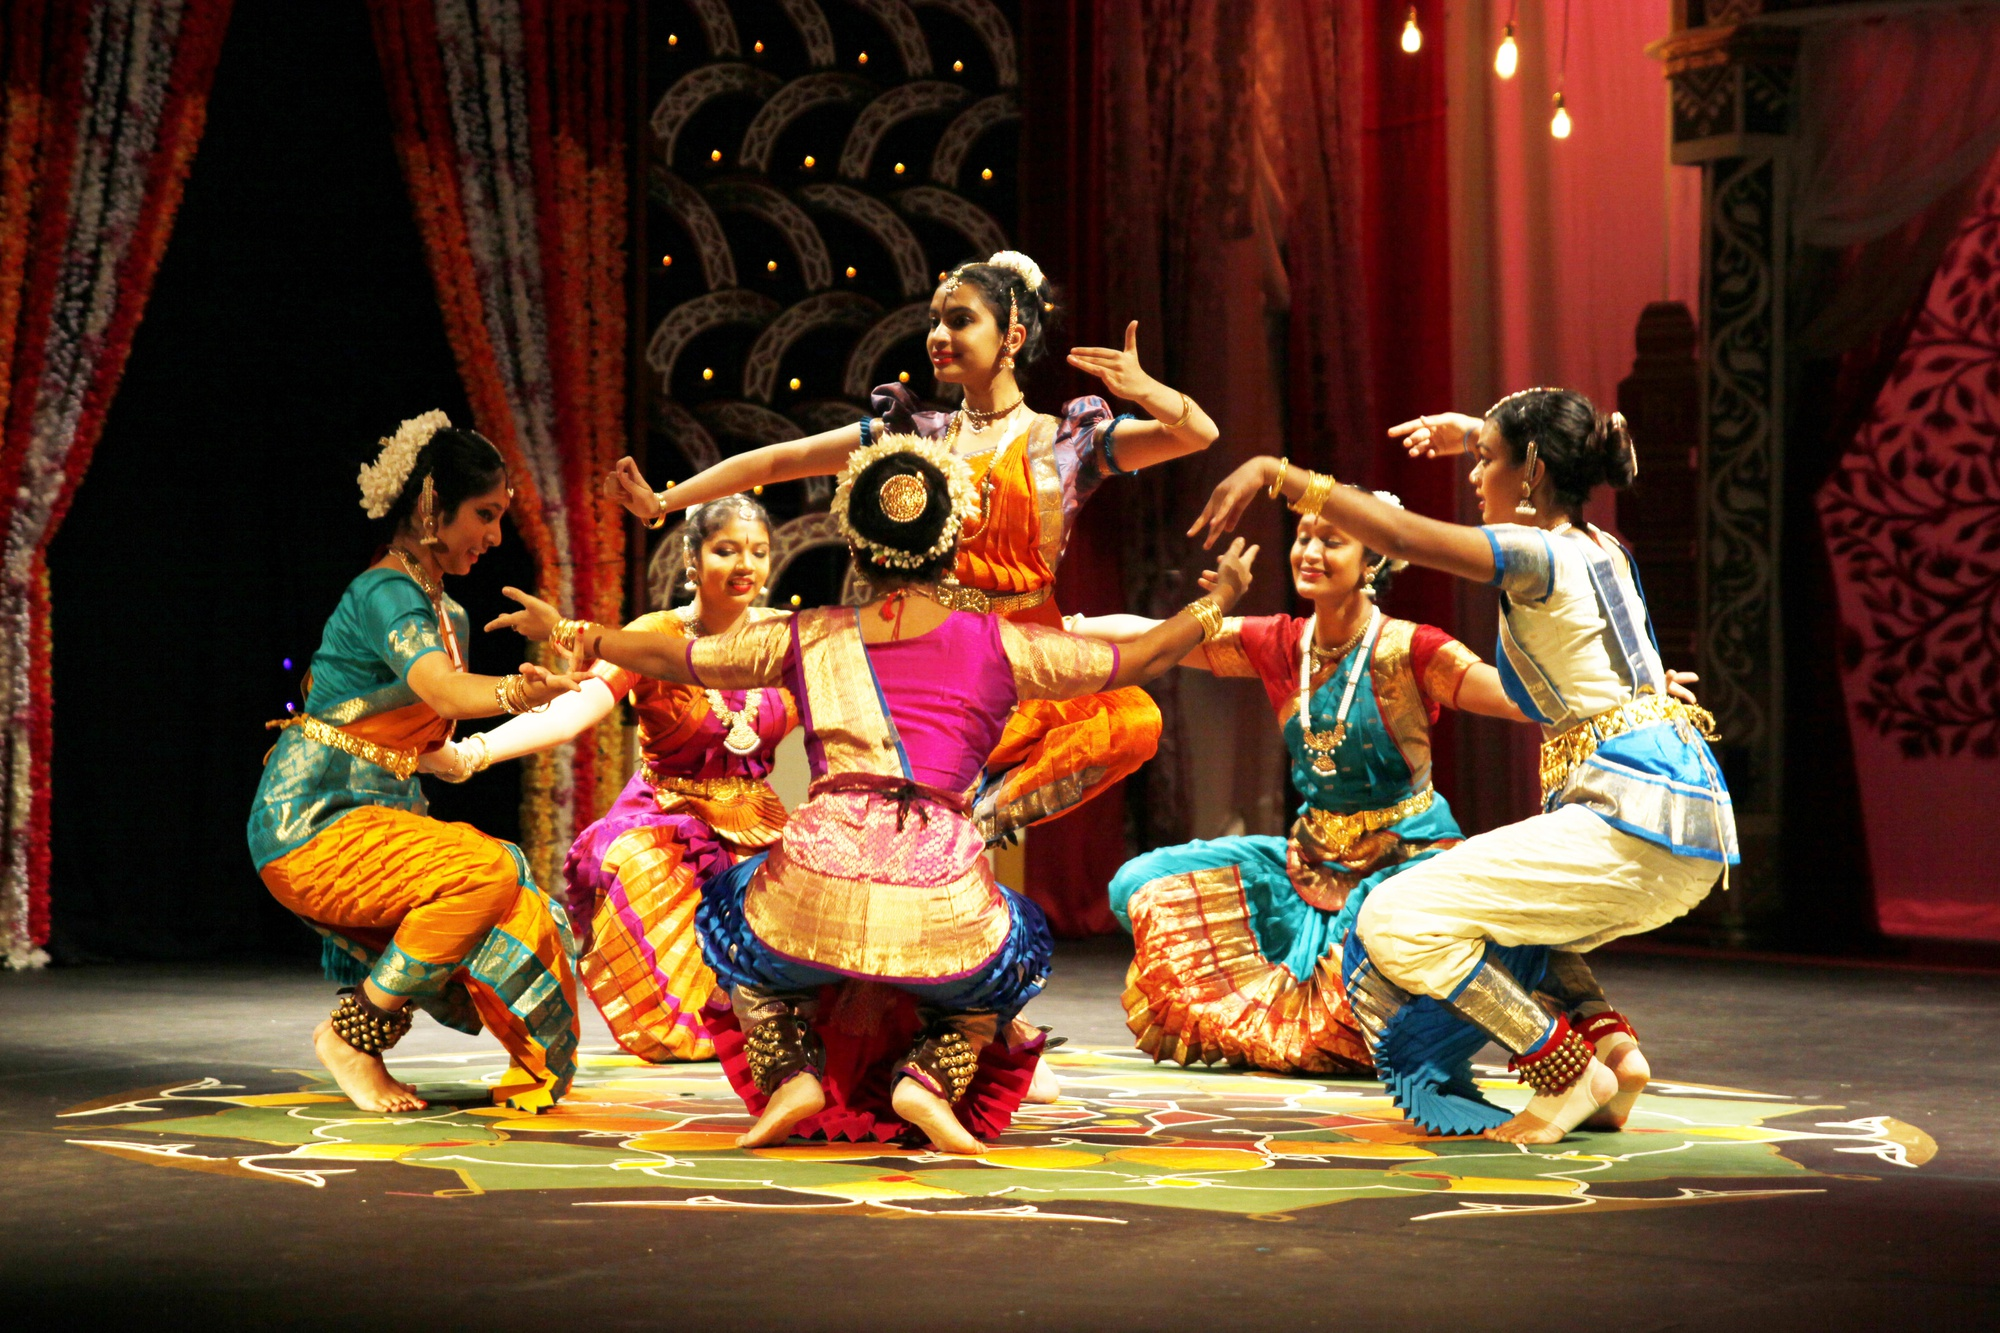 Each spring, students have the opportunity to take part in Ghungroo, which celebrates South Asian music, dance, and culture.